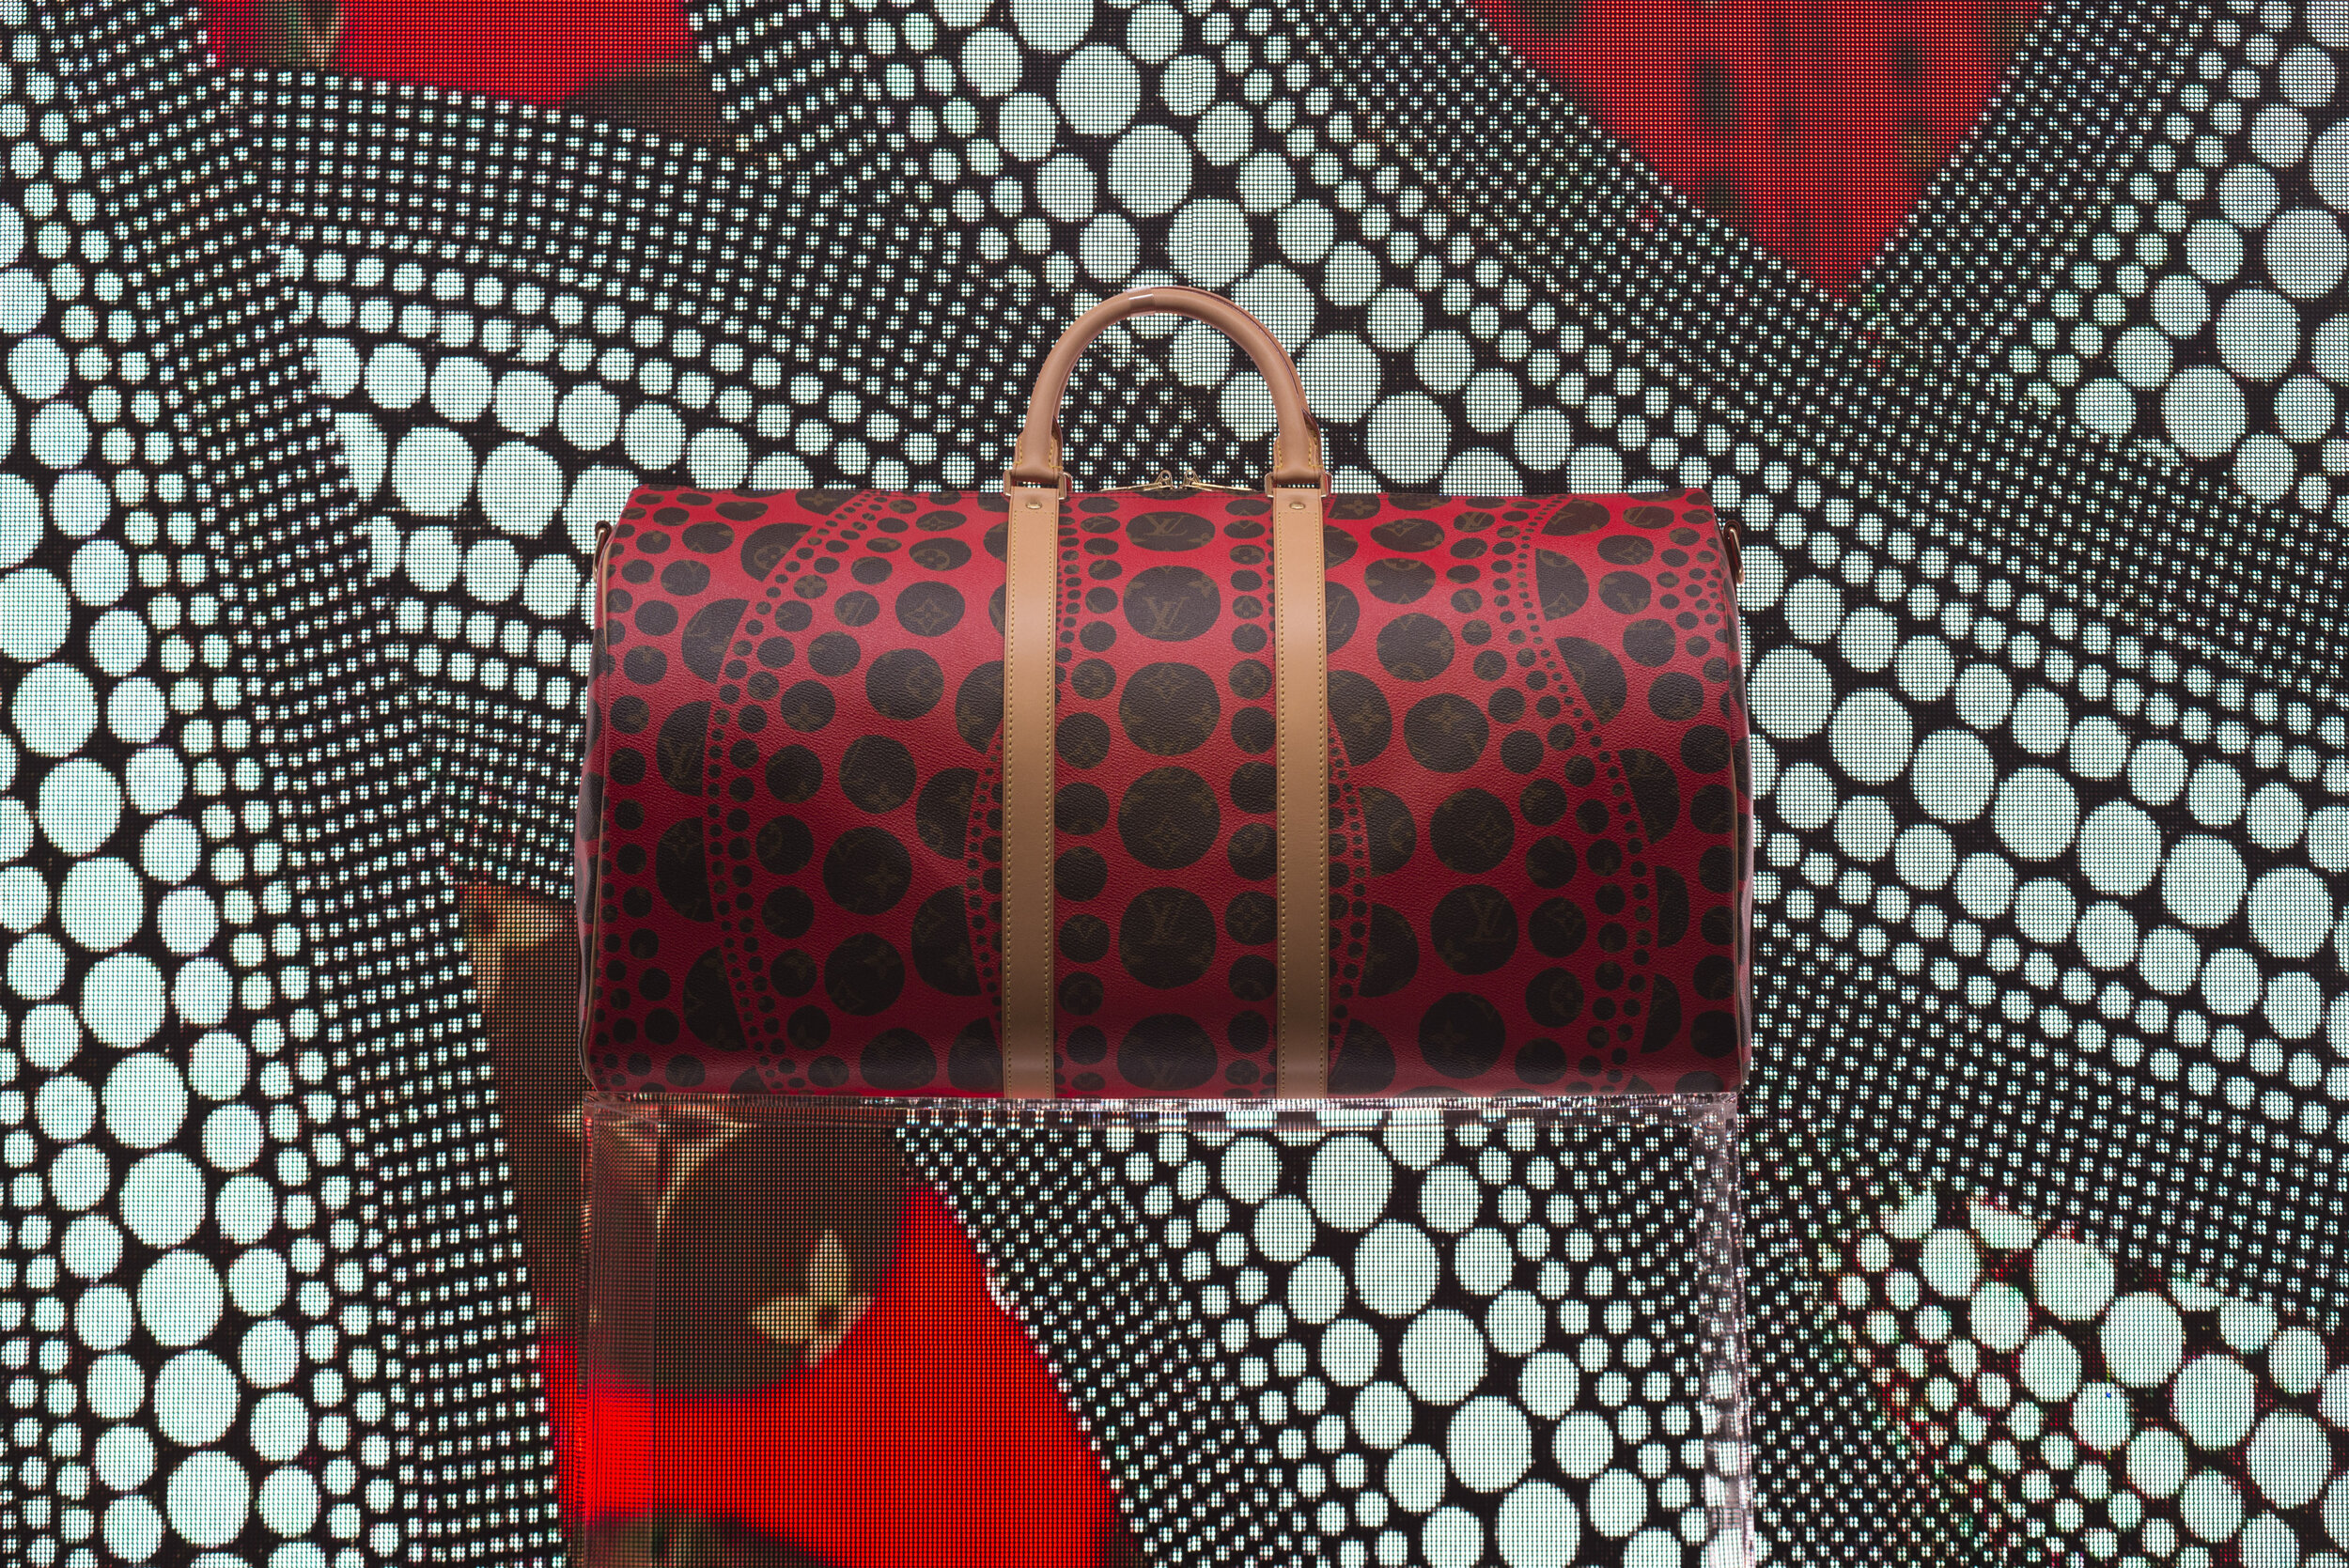 Louis Vuitton collaborated with Japanese artist Yayoi Kusama to create this one of a kind designer Keepall bag. Yayoi Kusama is well-known for her eccentric dots in her artwork due to her symptoms from bipolar disorder.  (Anthony Mayan/The Corsair)